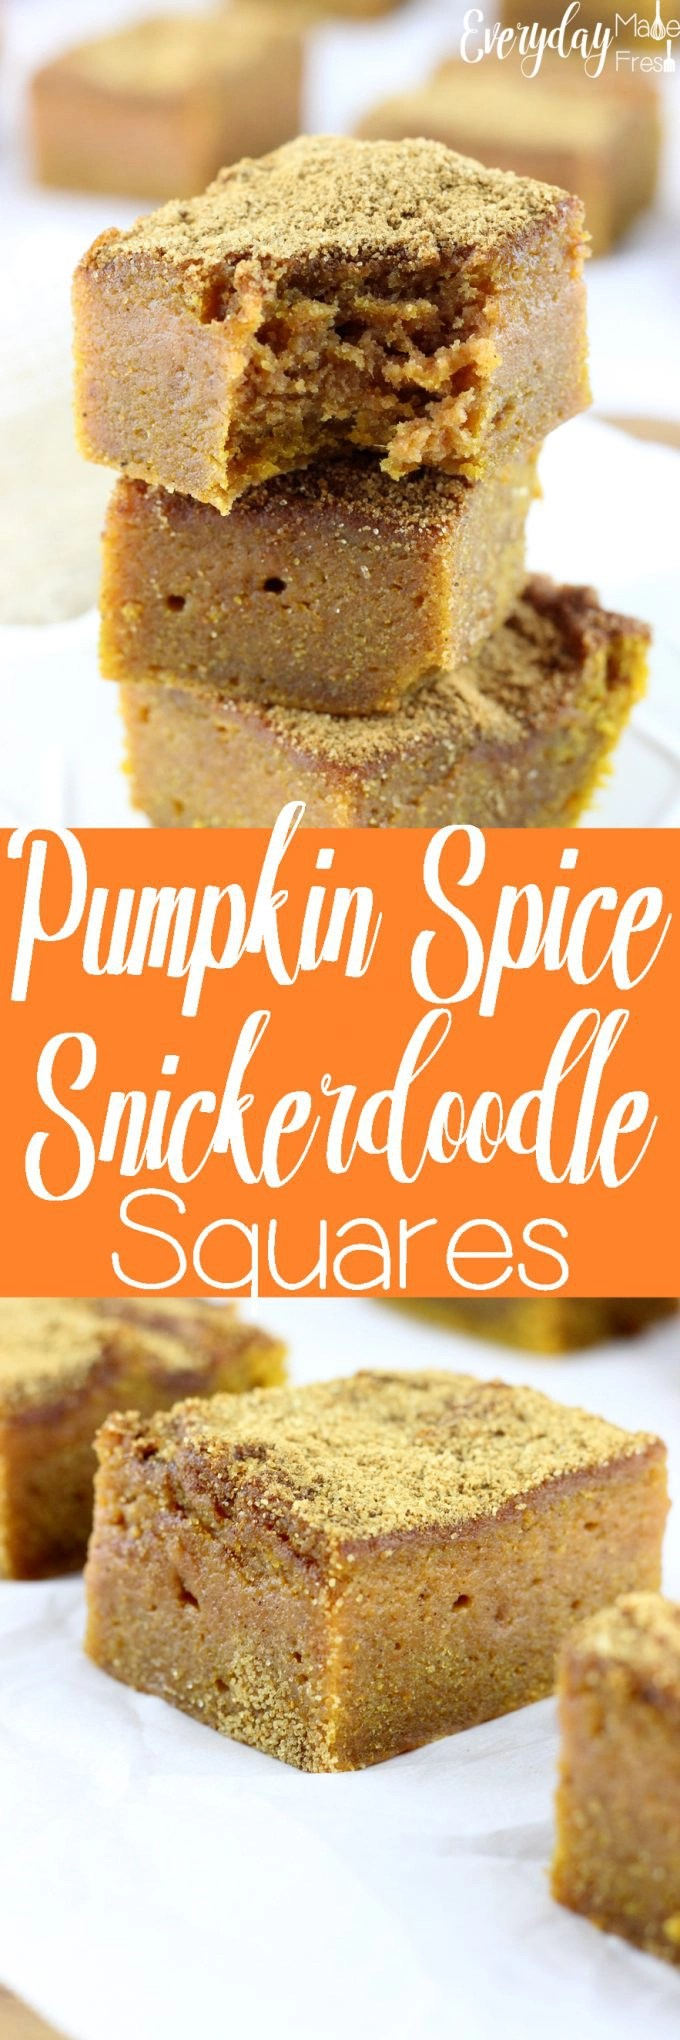 Soft and super moist, full of pumpkin spice flavor, and perfectly topped with a mixture of cinnamon and sugar goodness; these Pumpkin Spice Snickerdoodle Squares are pretty much perfection in a pan. | EverydayMadeFresh.com